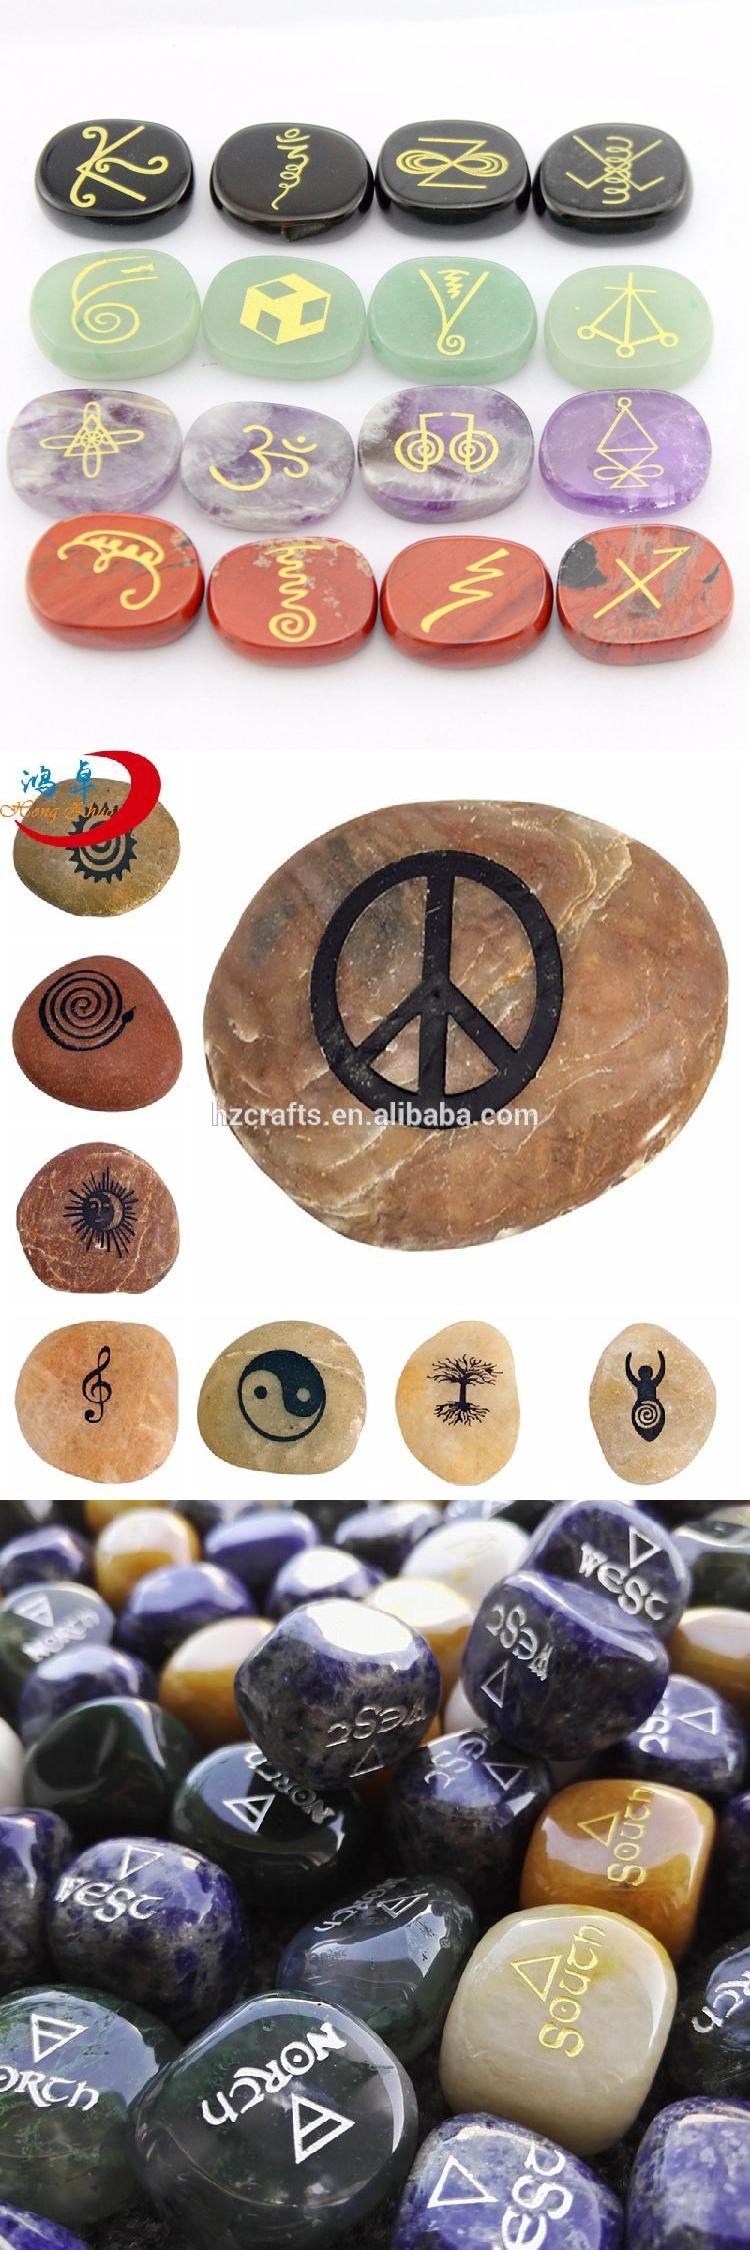 Healing engraved inspirational word stones | buy wholesale stone therapy products